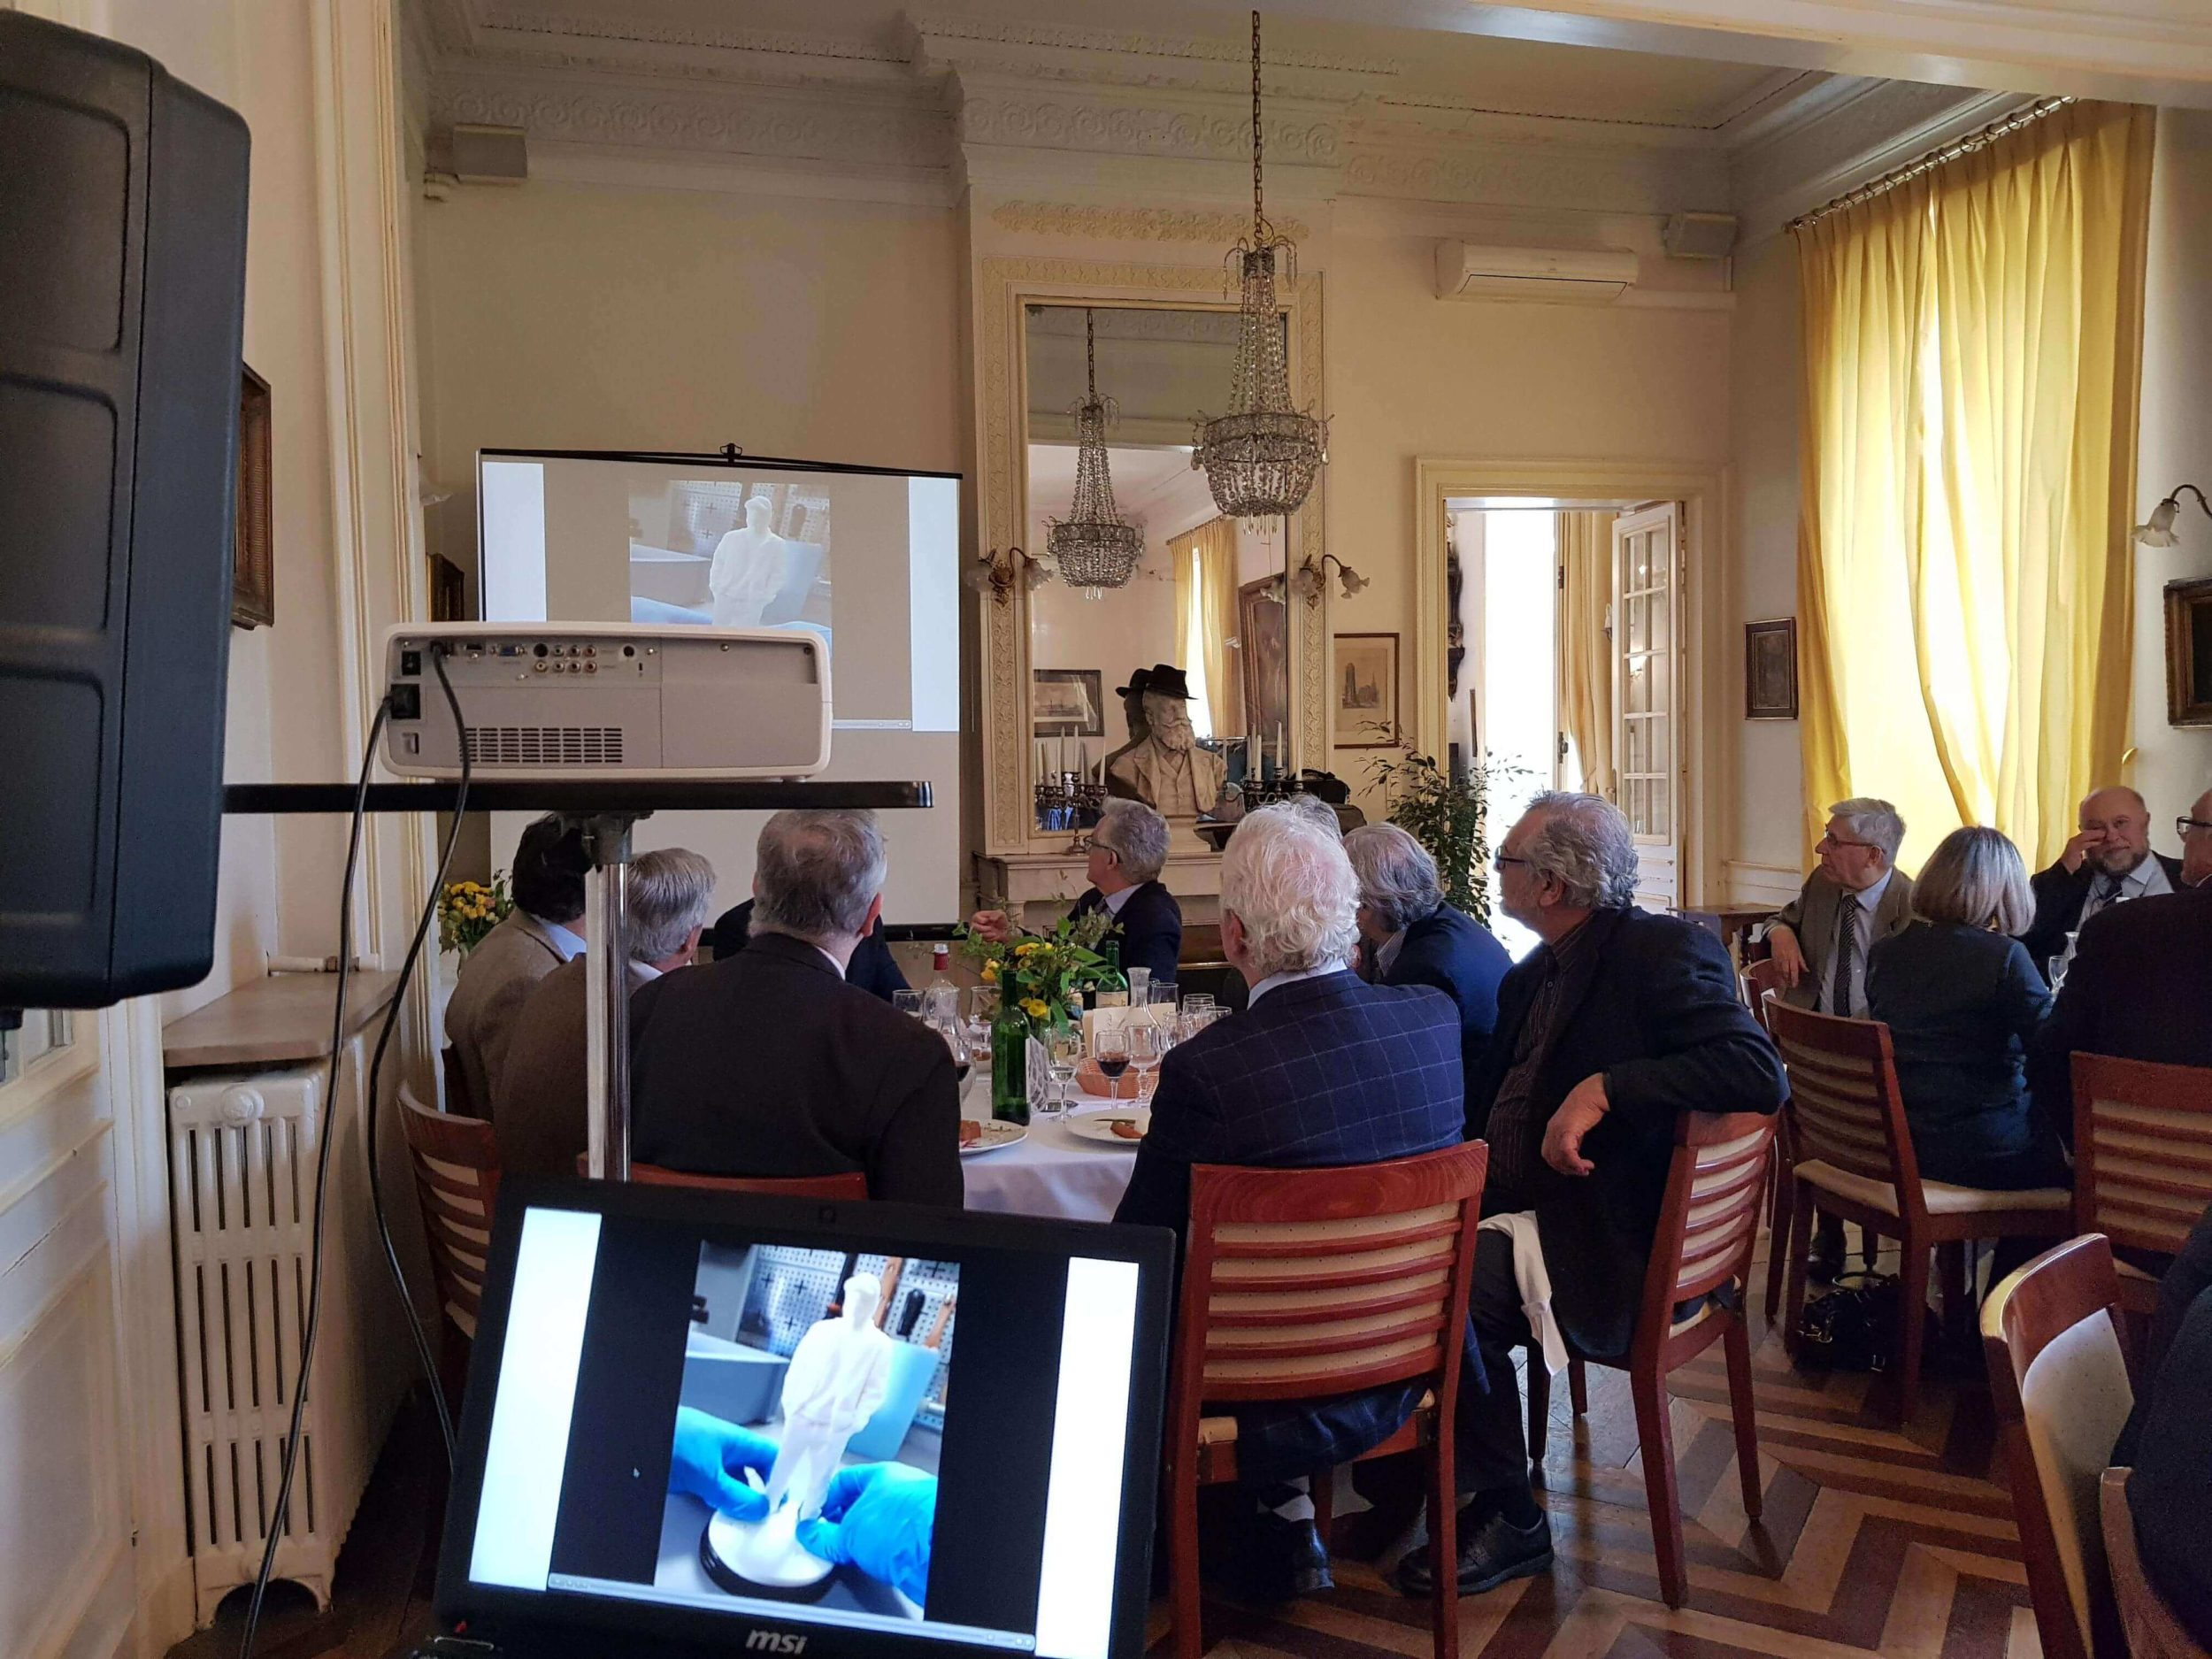 conference-rotary DL Additive au Rotary Club de Bordeaux